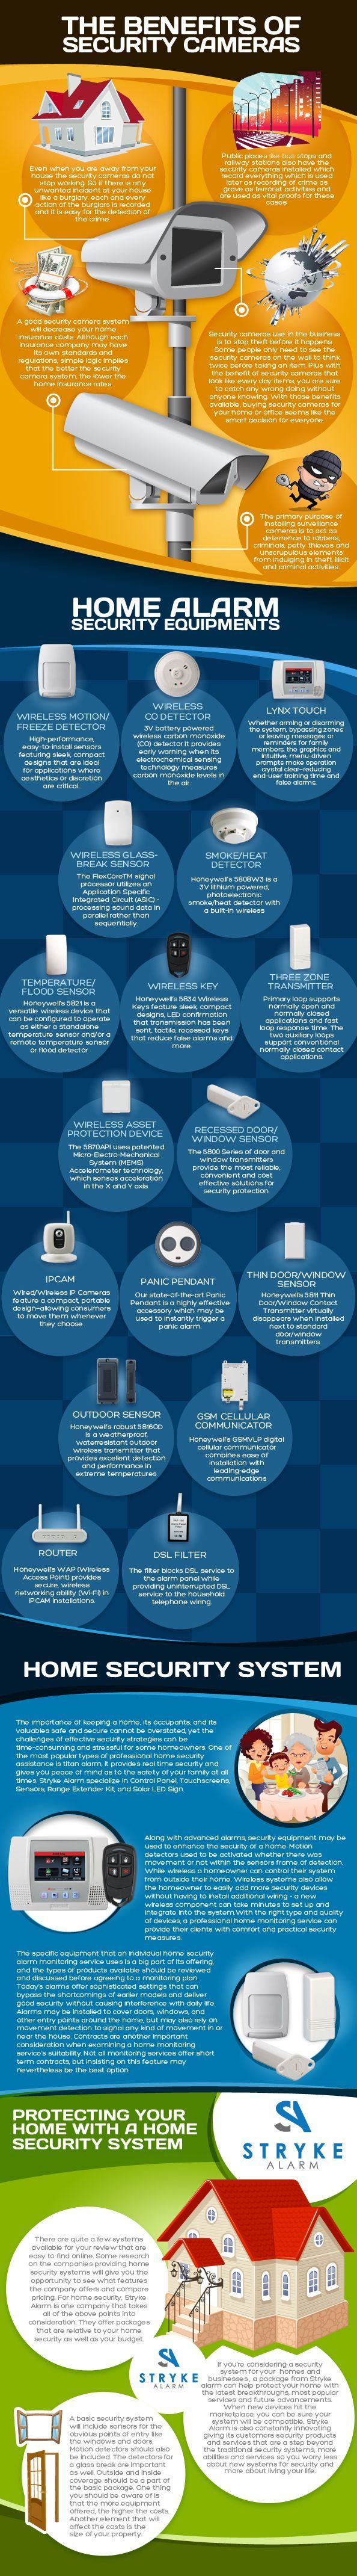 18 best Home Safety images on Pinterest | Baby safety, 72 hour kits ...